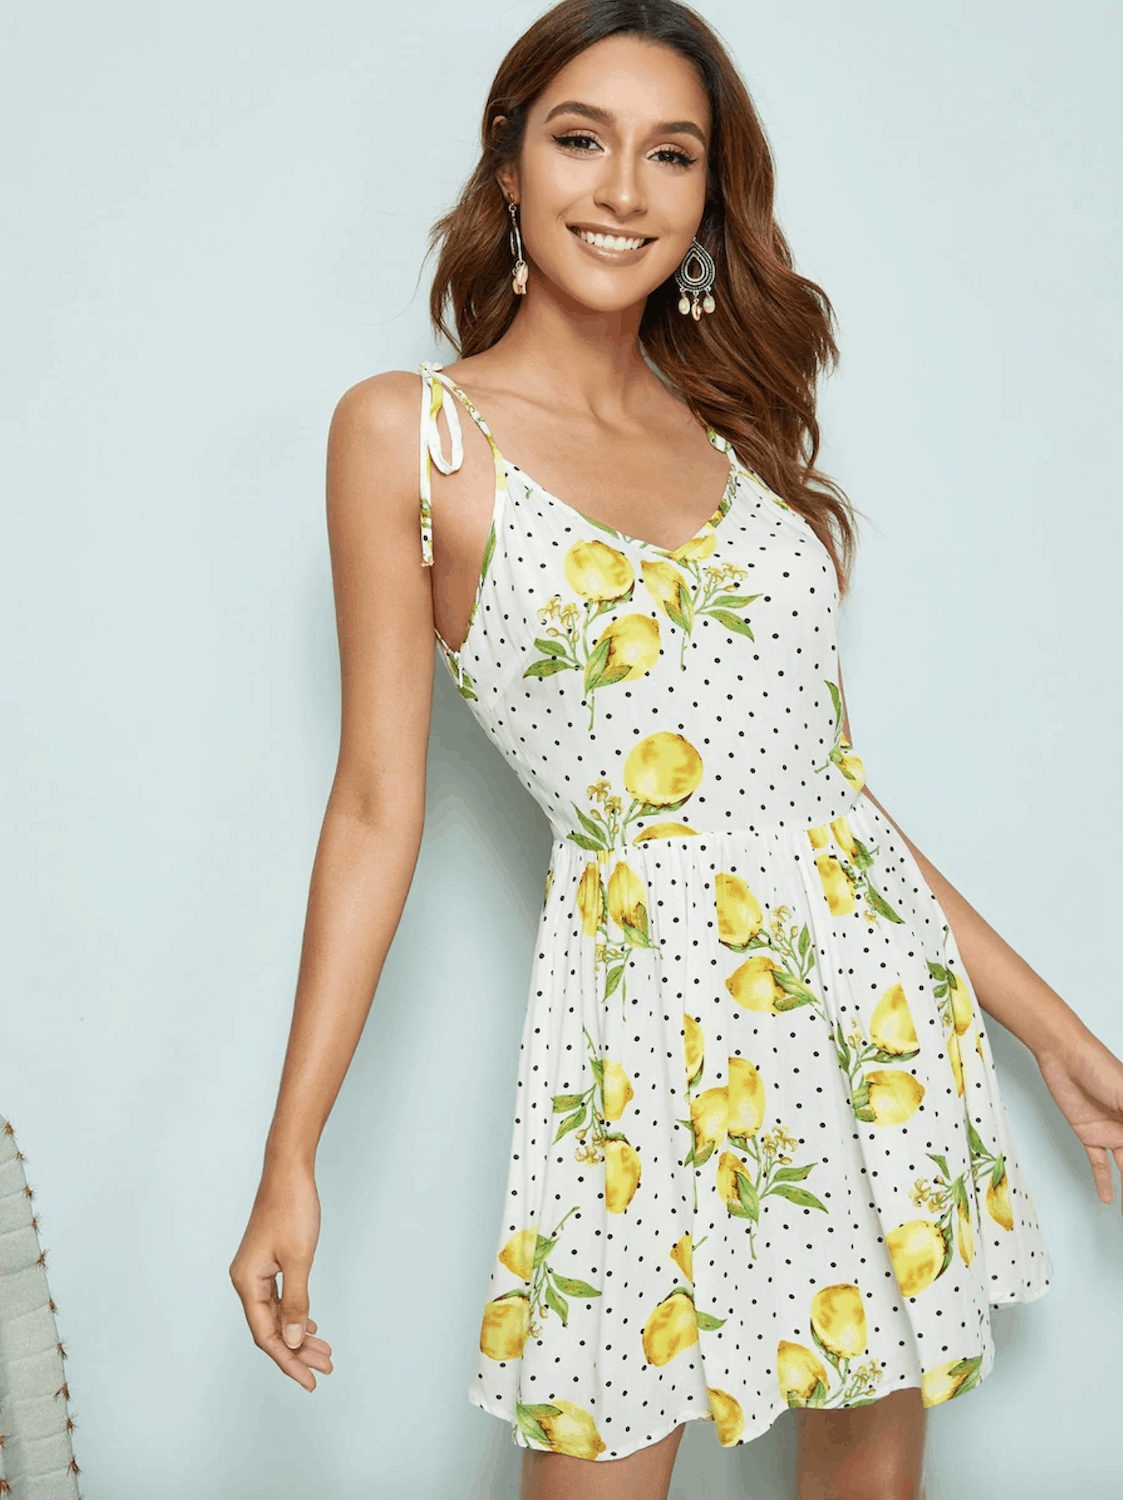 Gorgeous Summer Honeymoon Outfits SHEIN Lemon And Dot Print Self Tie Shoulder Dress